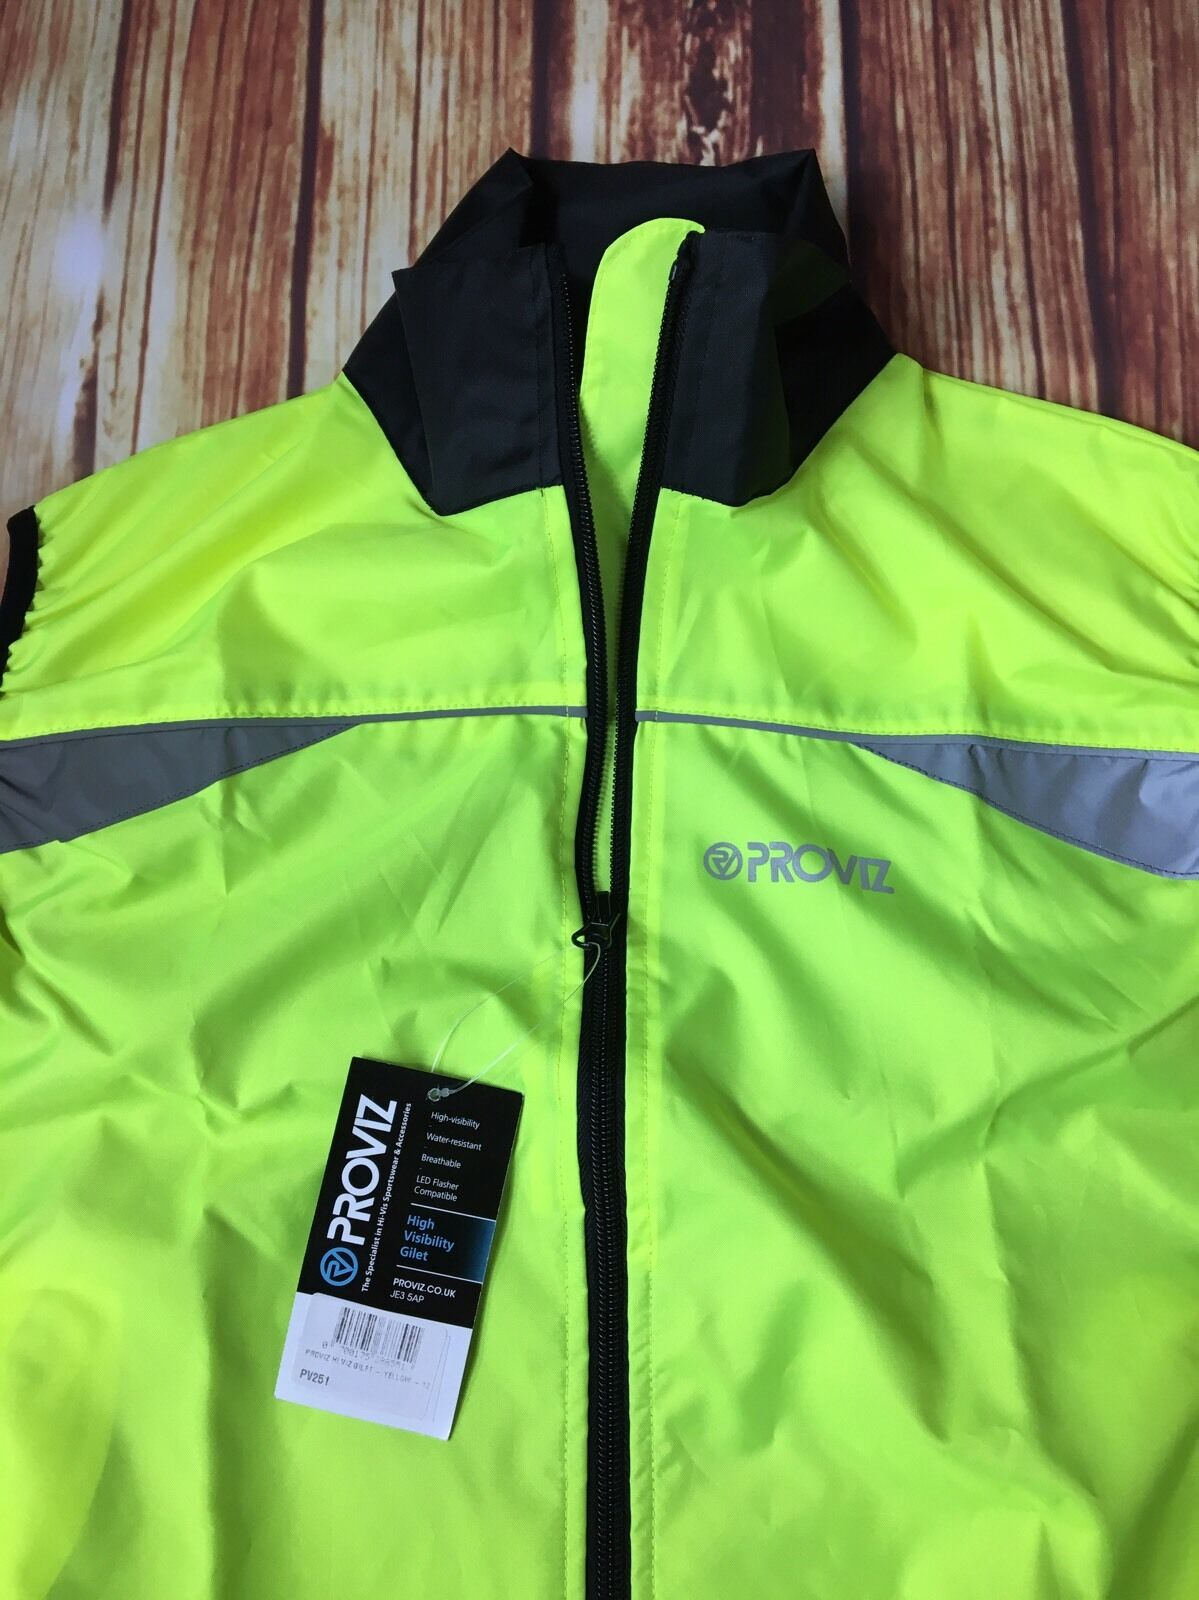 New PROVIZ   Reflect Womens 360 vest Yellow Size 12 with Free Shipping  new w tag  online cheap